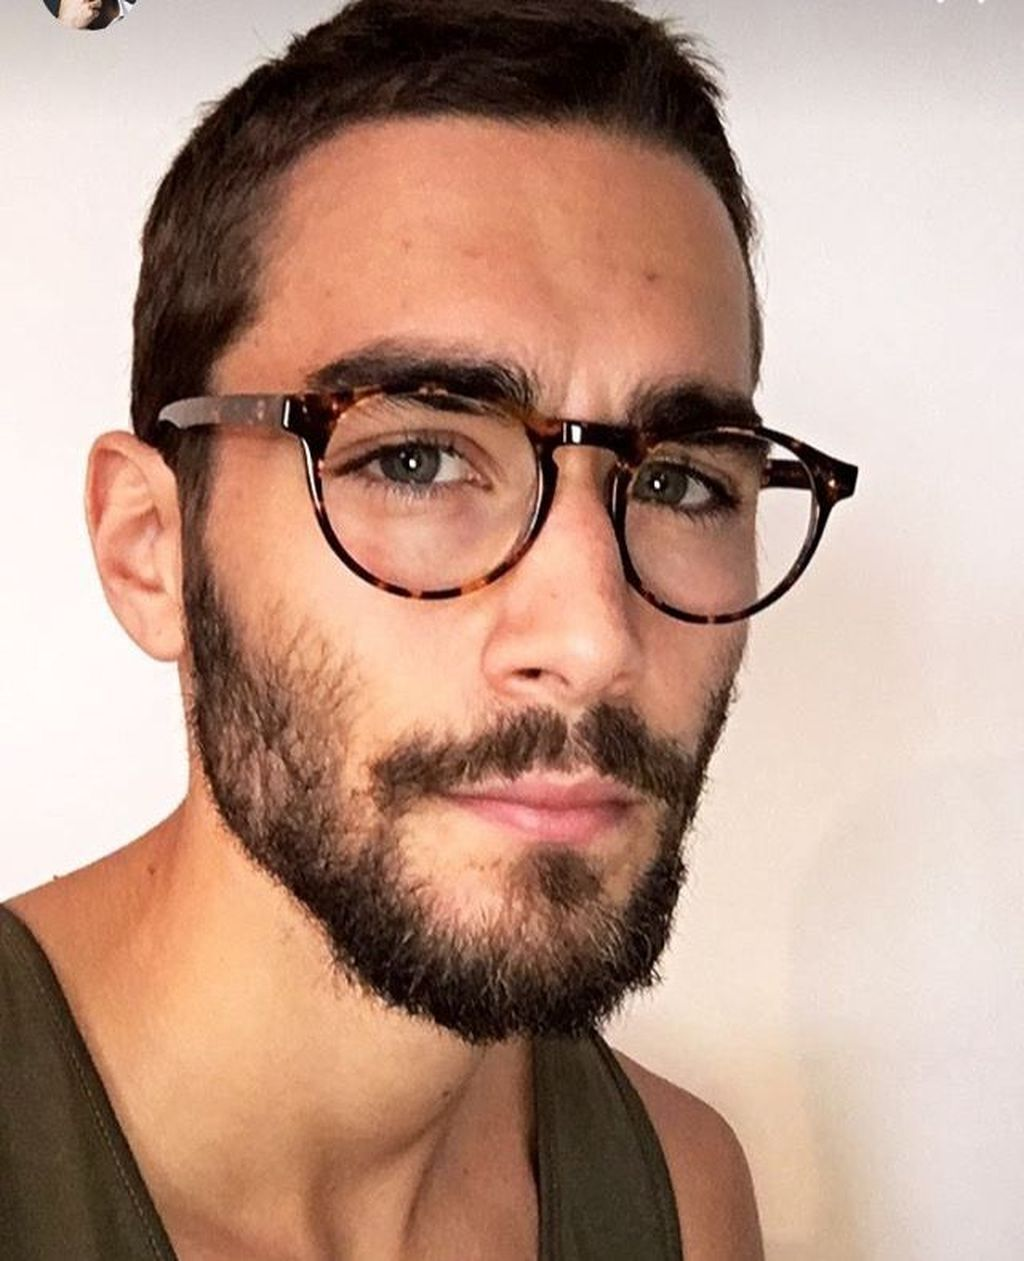 30+ charming eyeglasses ideas for men to go in style   man